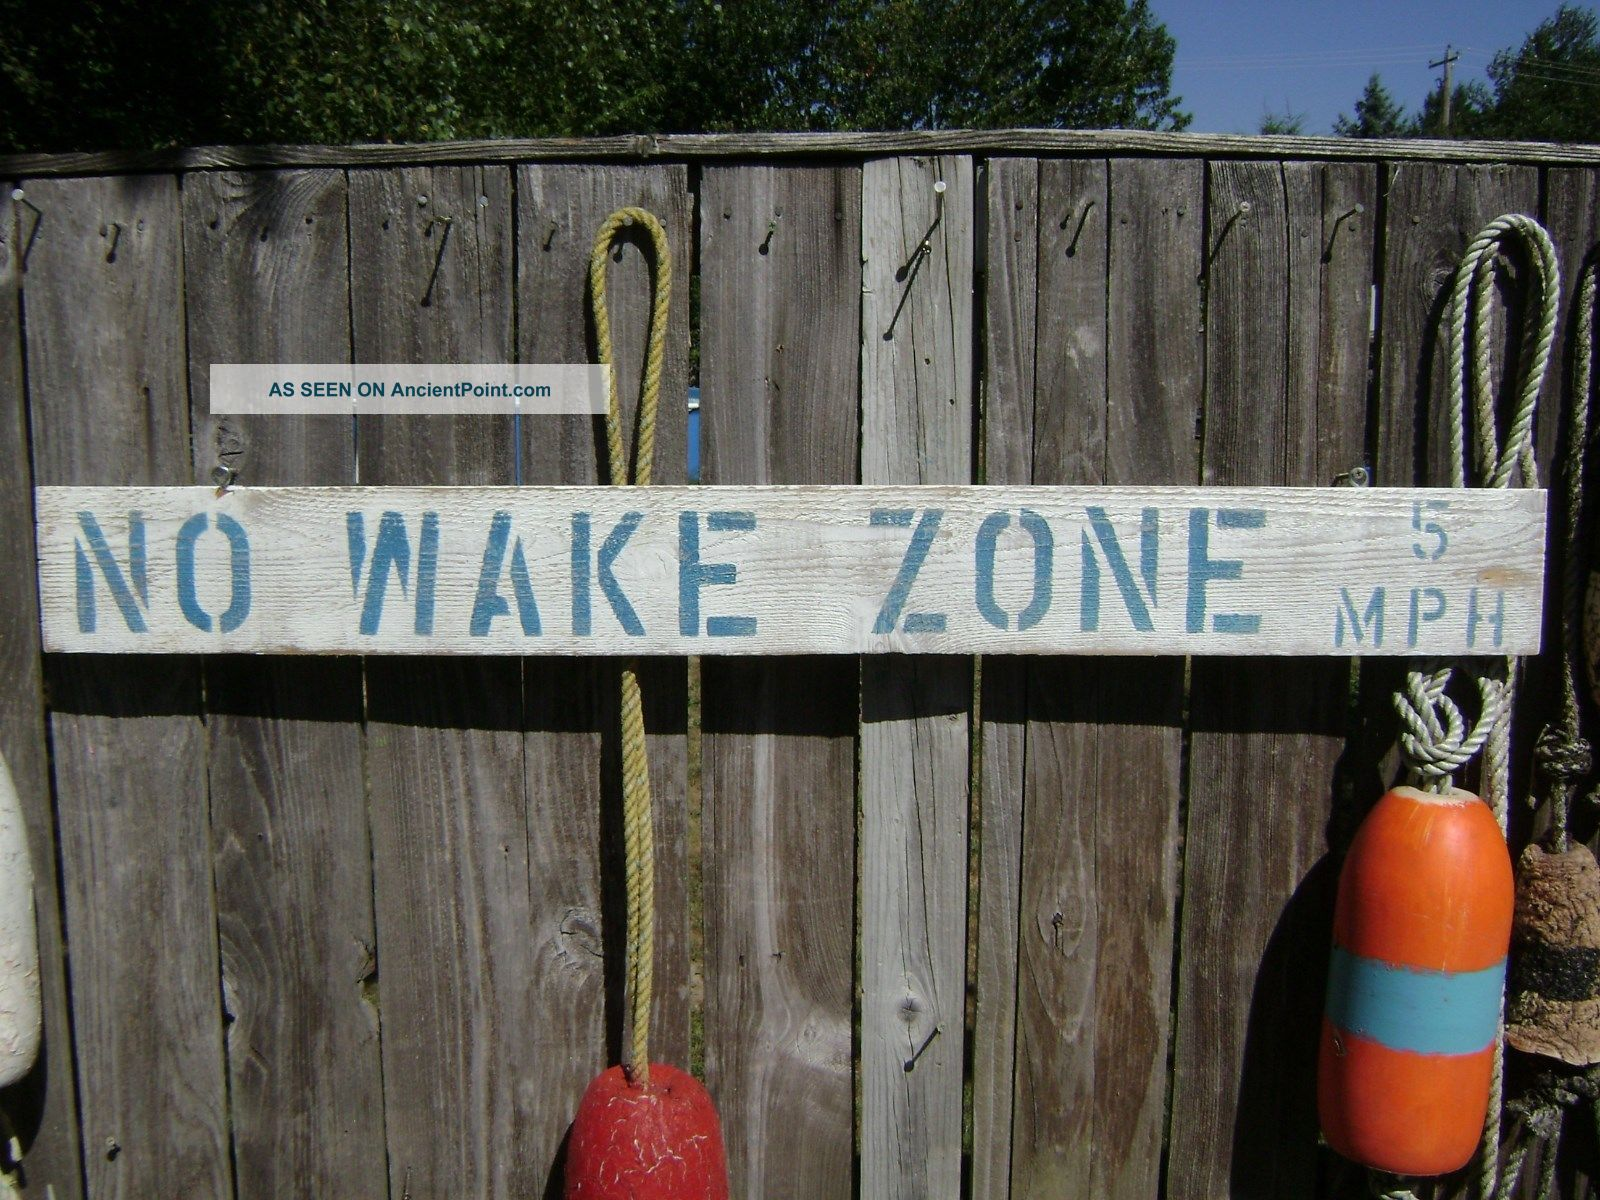 48 Inch Wood Hand Painted No Wake Zone 5mph Sign Nautical Seafood (s243) Plaques & Signs photo